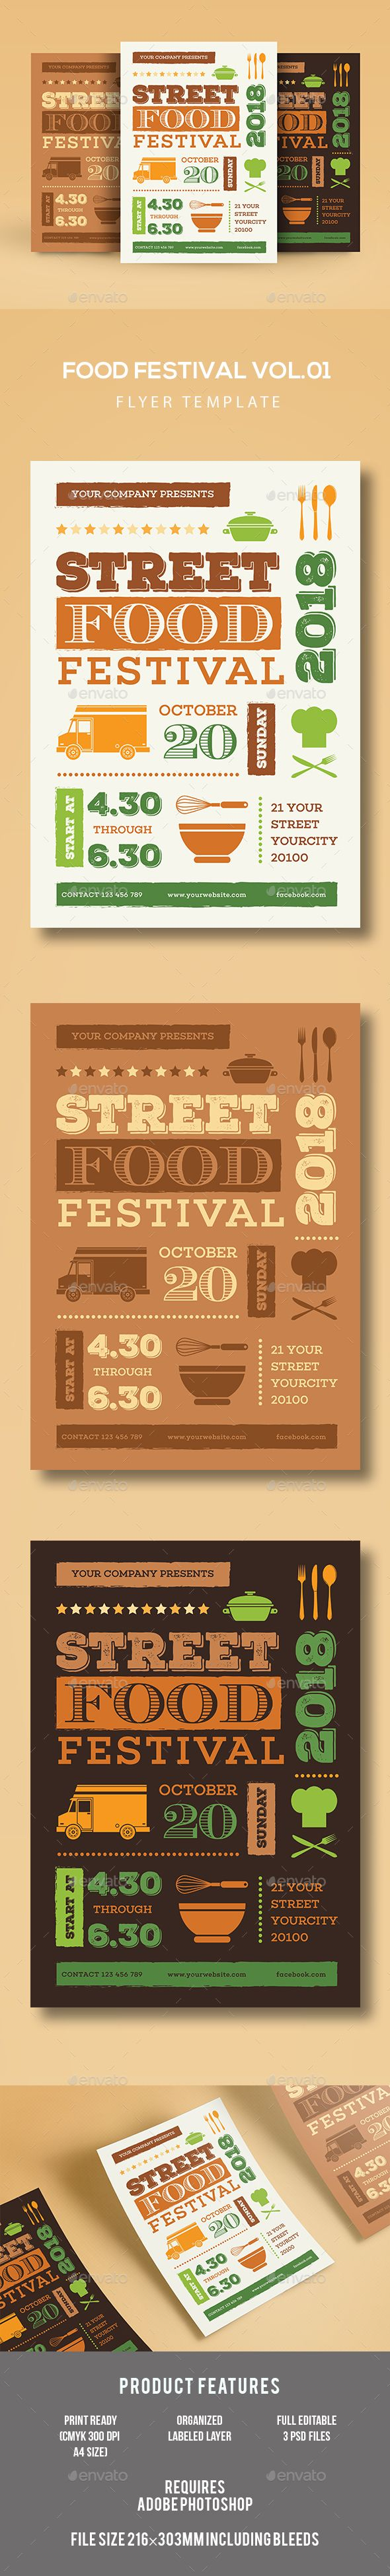 Food Festival Flyer Template PSD, AI Illustrator. Download here: http://graphicriver.net/item/food-festival-flyer/16892280?ref=ksioks